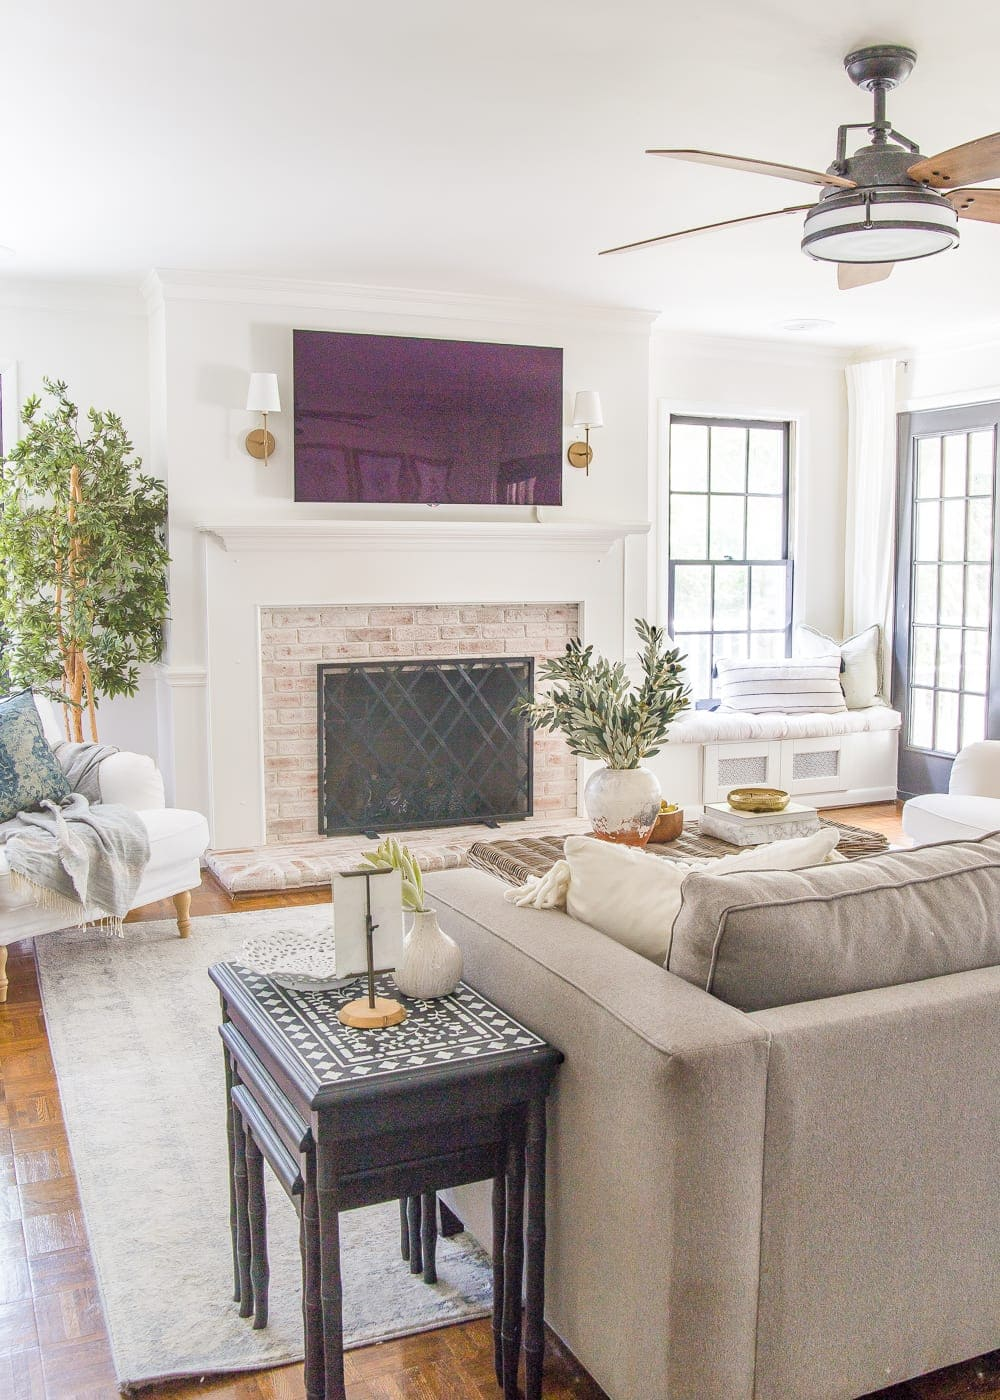 Neutral Fall Faux Greenery   Why ditching traditional fall colors is a better decorating decision to stretch your dollars + the best neutral fall greenery and decor on sale.